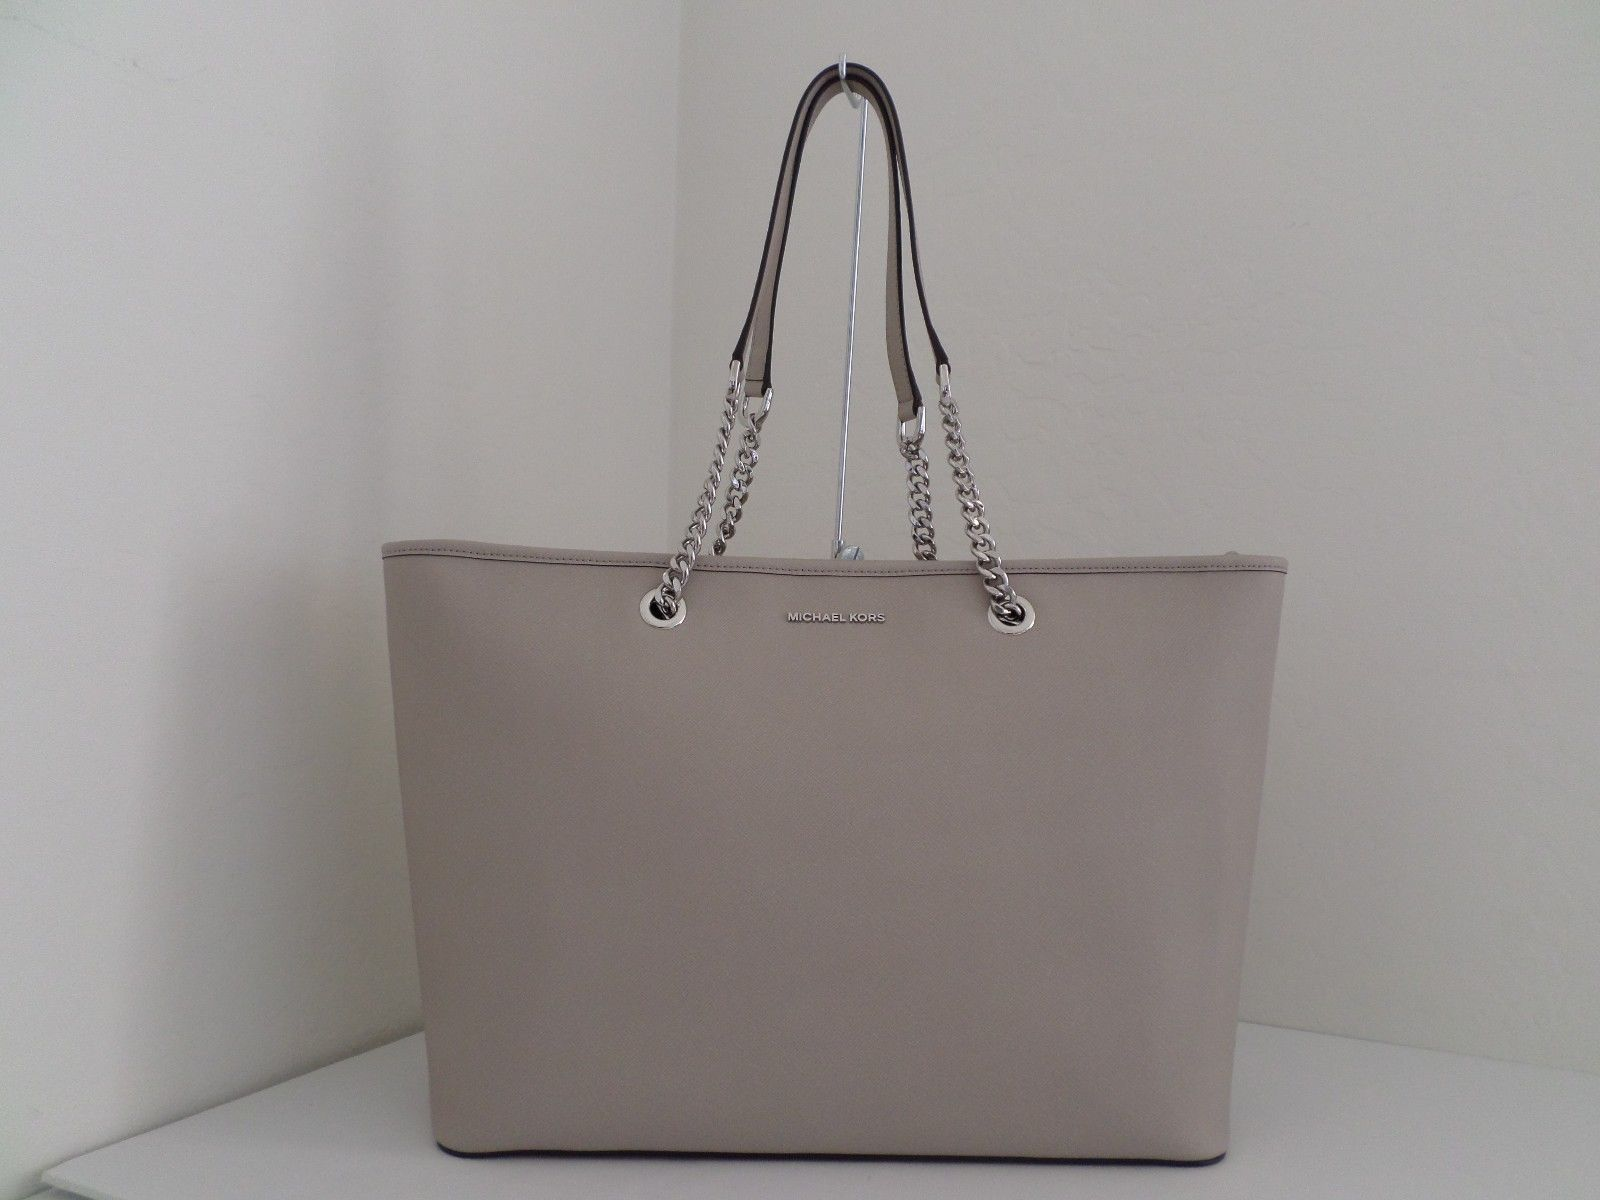 NWT AUTH MICHAEL KORS JET SET CHAIN MULTIFUNCTION LEATHER TOTE-$298-CEMENT https://t.co/r2EBkaFSDg https://t.co/sK6KSqW9IM